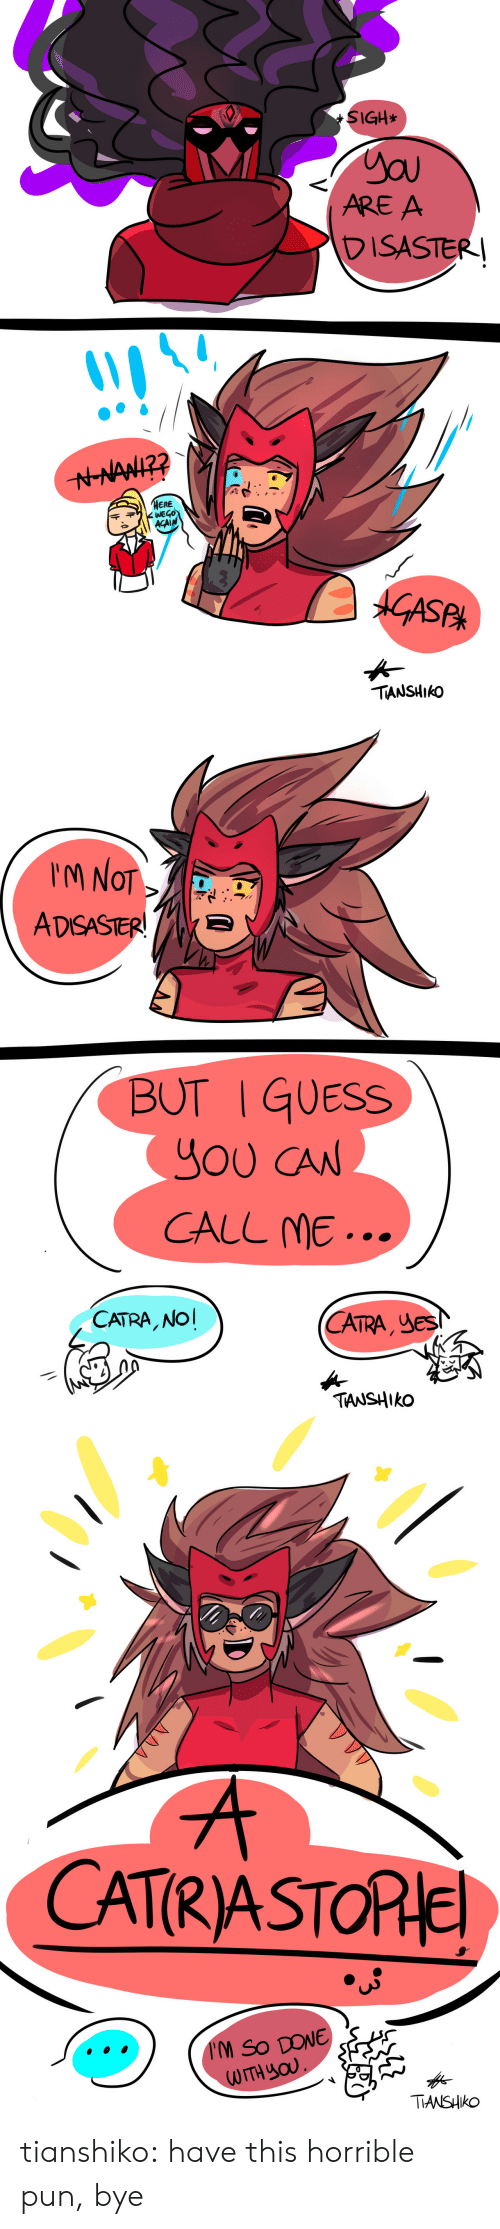 ere: SIGH*  ARE A  DISASTER  ERE  千ヂ WEGO  ACAIN  ek  TIANSHIkO   M NOT  ADSASTERE  BUT I GUESS  YOU CAN  CALL ME...  CATRA, NO  CA , JeS  TRA  TANSHIko   CATRASTORle  TIANSHIko tianshiko:  have this horrible pun, bye